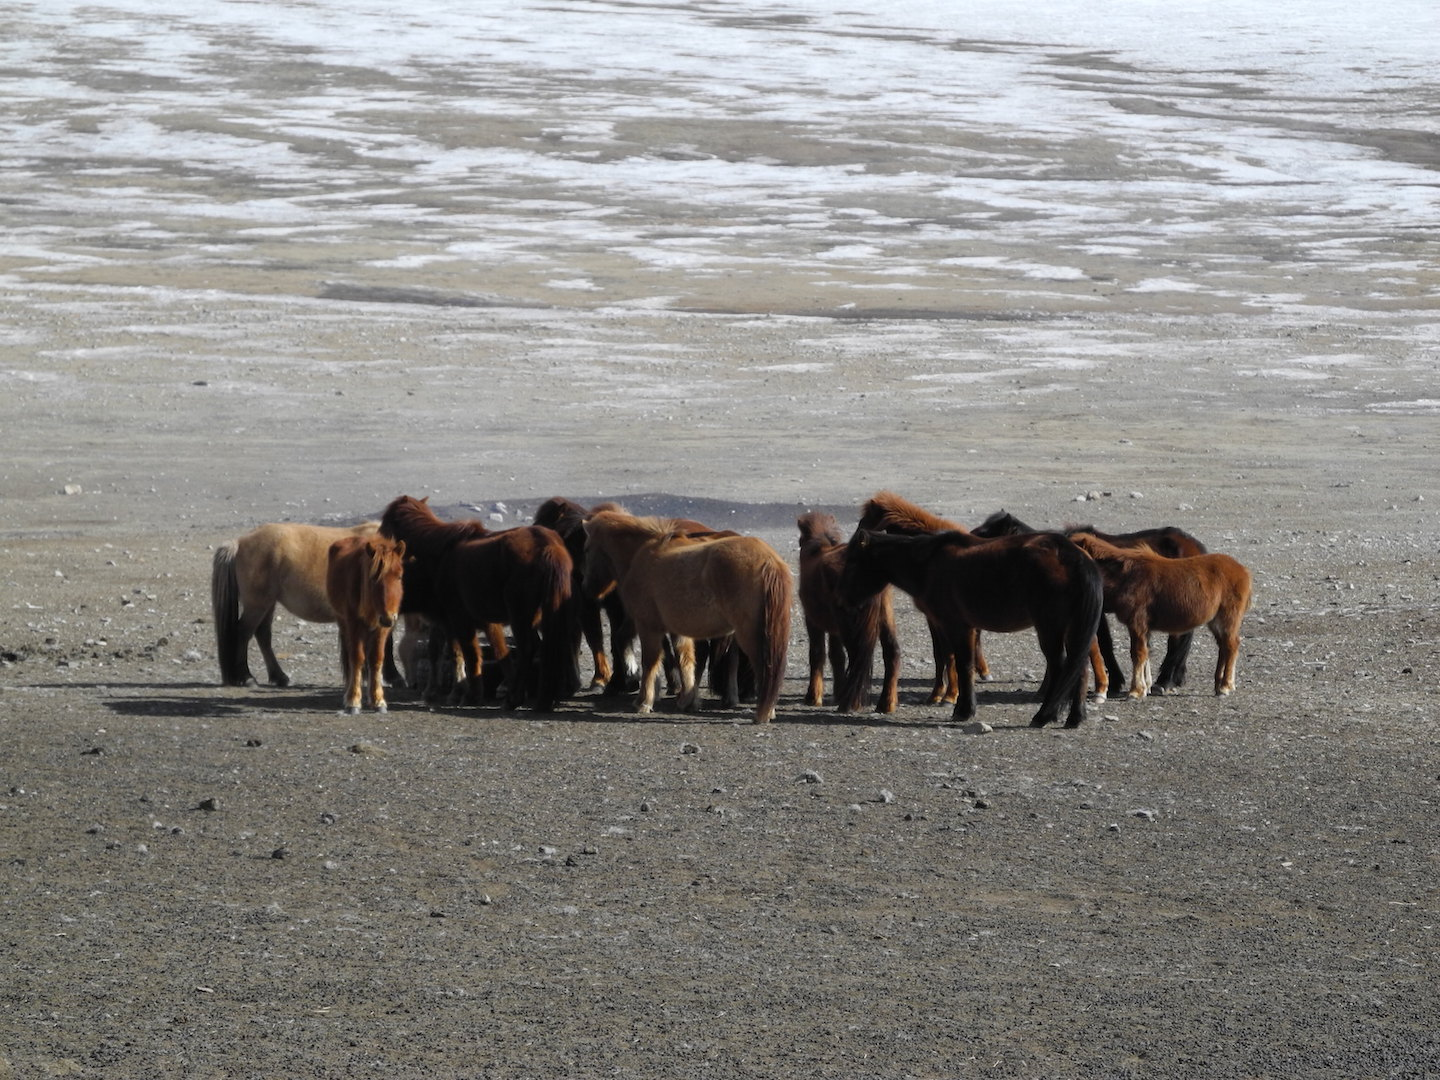 Horses try to graze in Mongolia